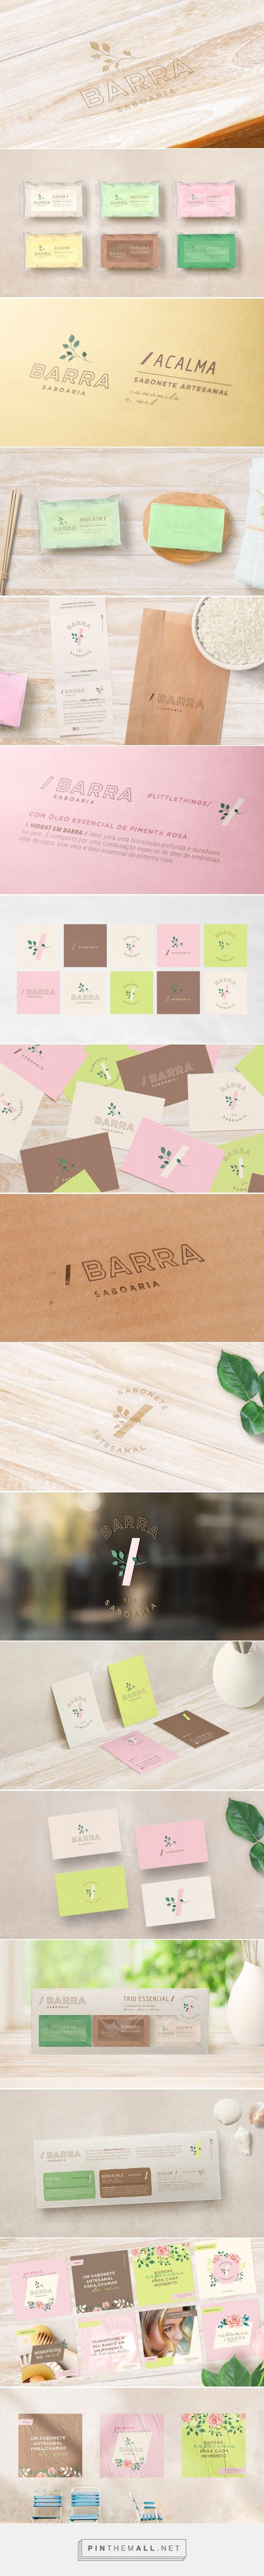 Barra Saboaria - Packaging of the World - Creative Package Design Gallery - http://www.packagingoftheworld.com/2017/10/barra-saboaria.html